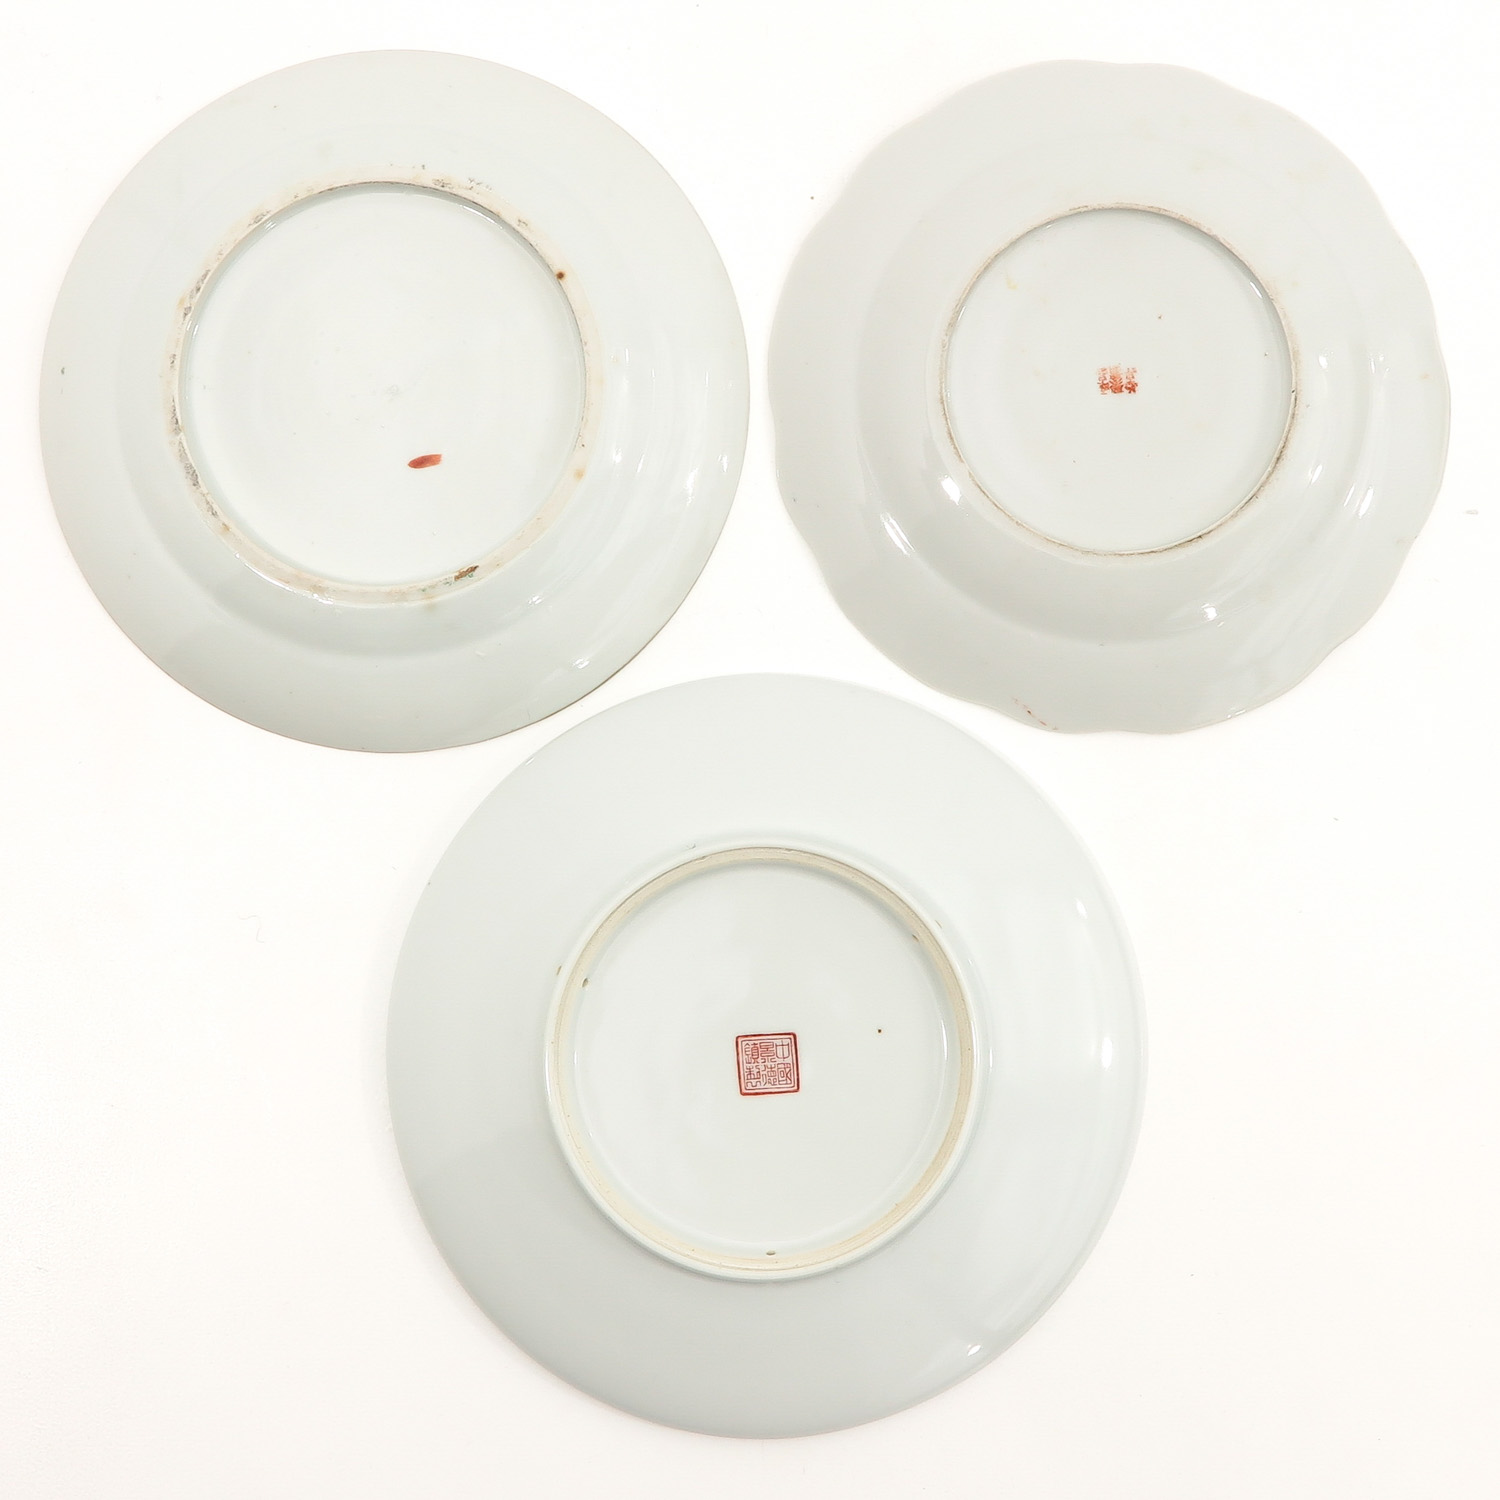 A Collection of 3 Plates - Image 2 of 10